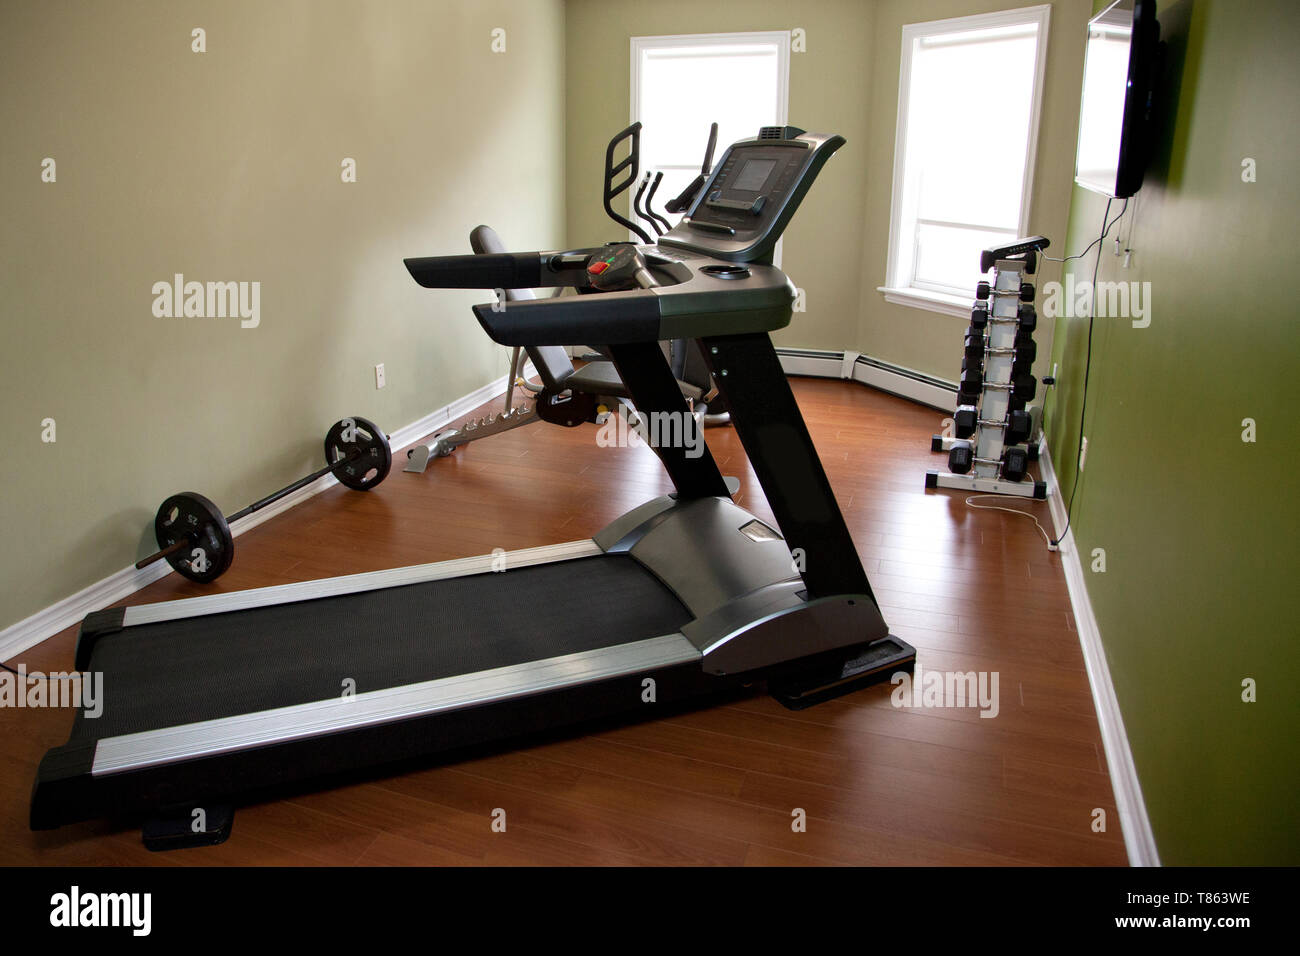 A treadmill in a home gym with other equipment inside an apartment